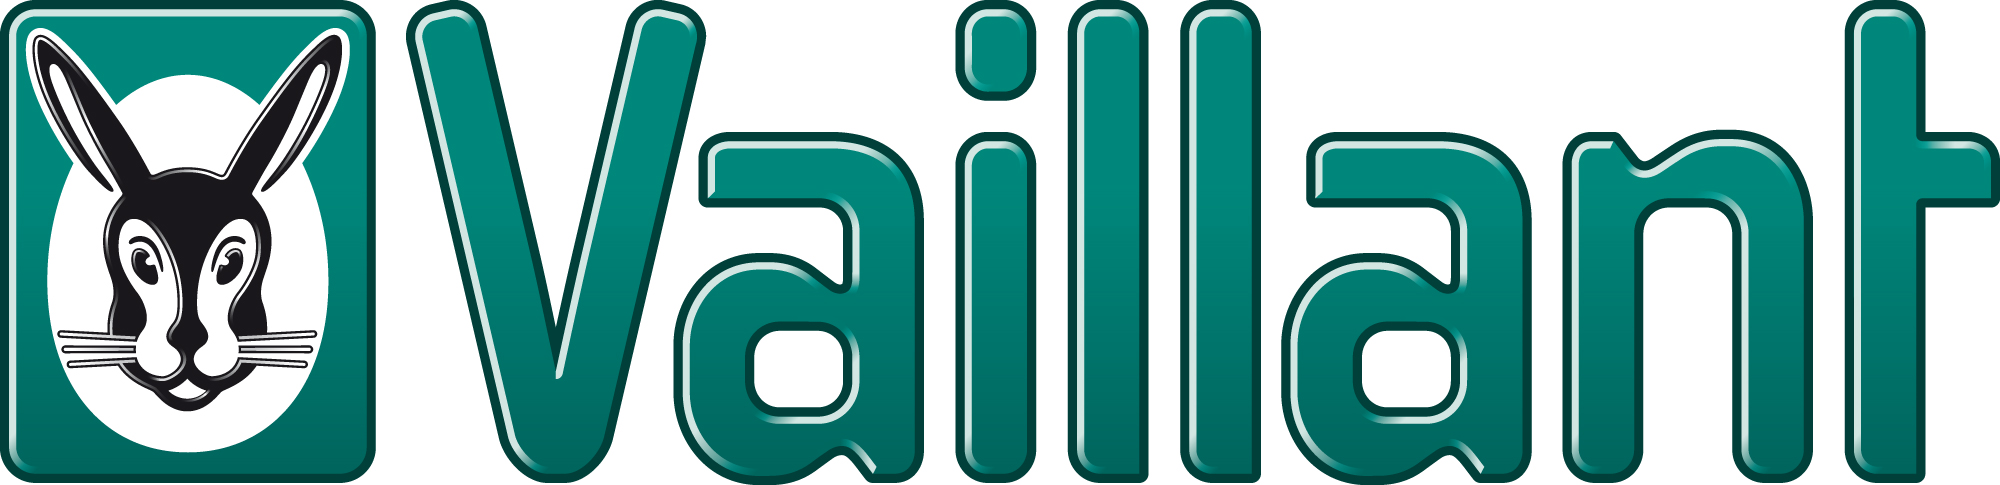 Vaillant Logo CMYK vierkleuren druk zoals brochures adverts etc